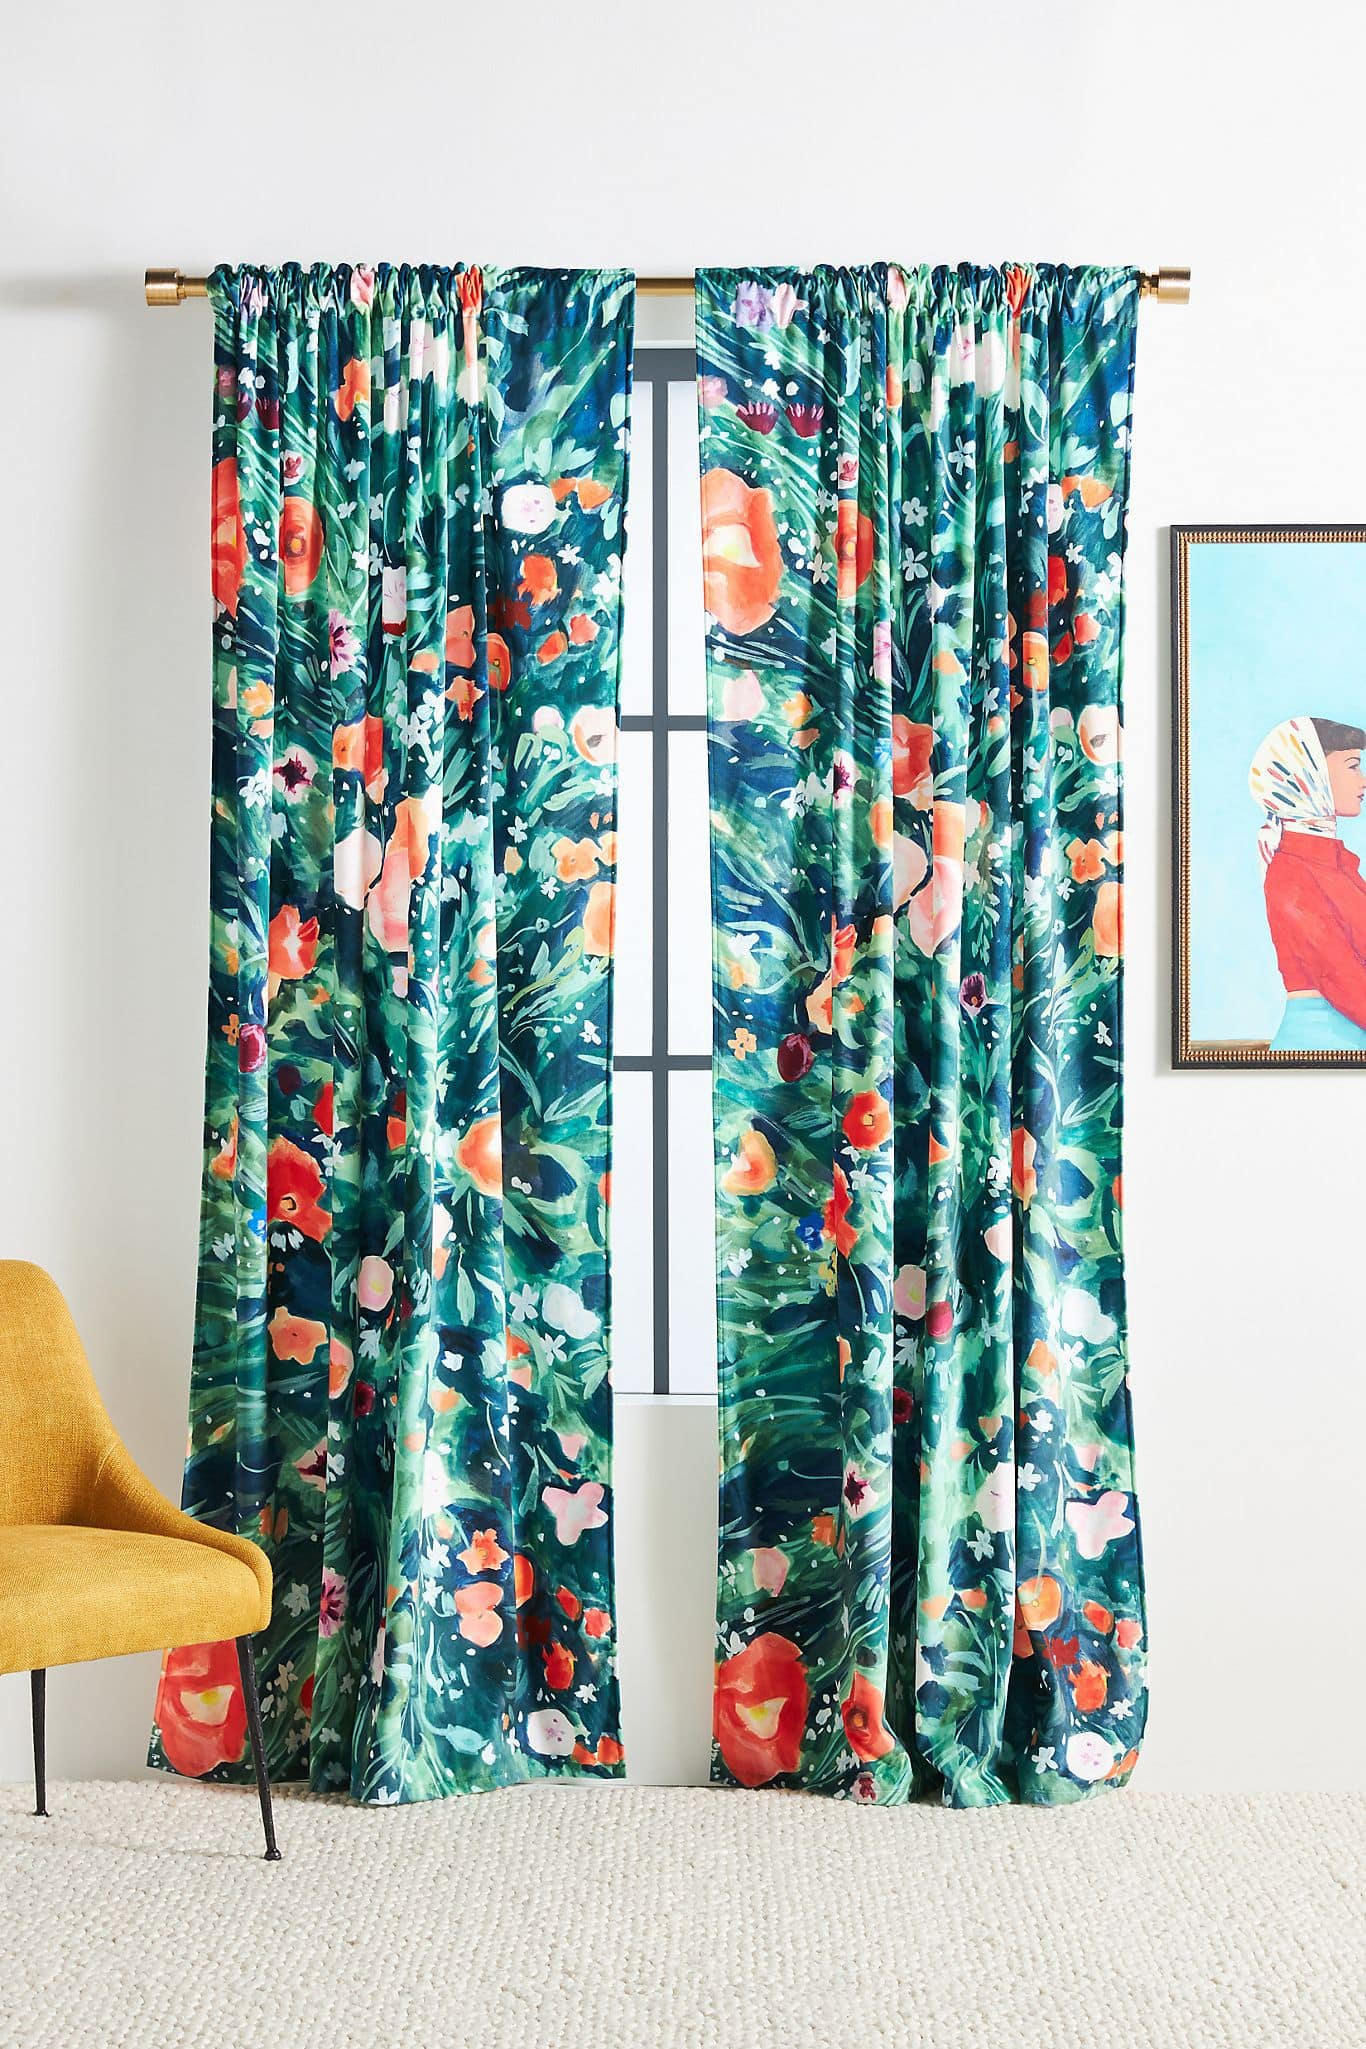 Vibrant Floral Curtains With White Walls